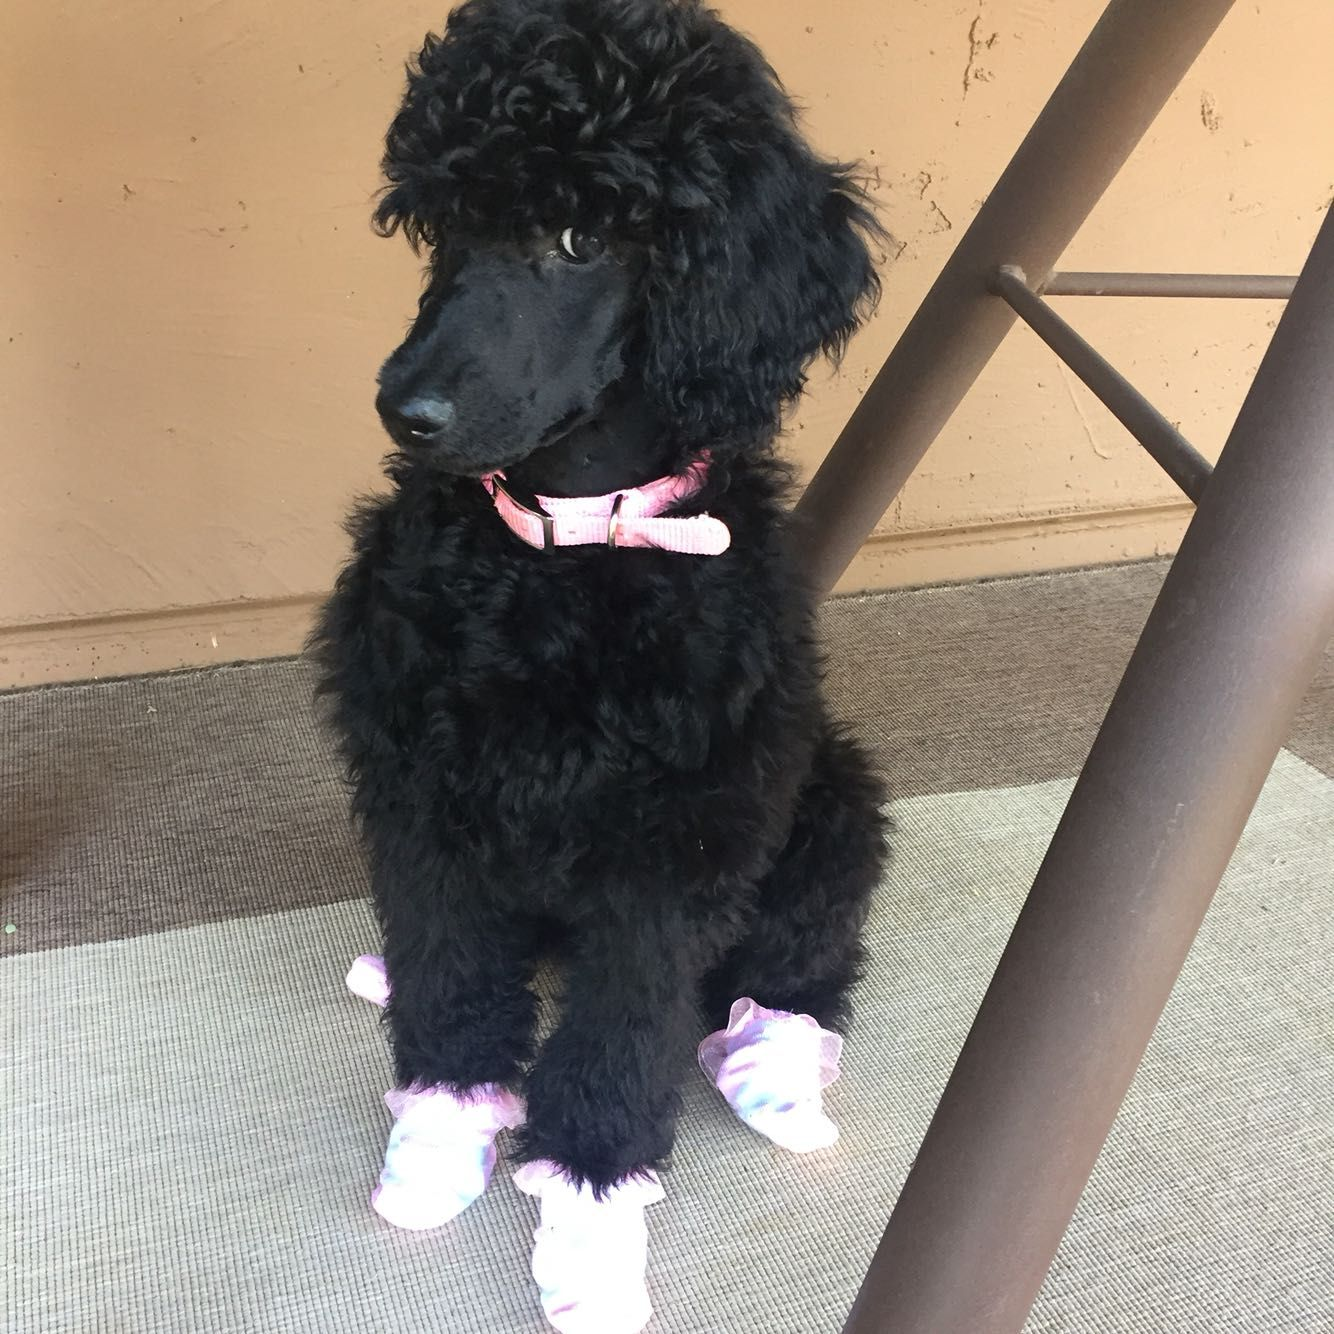 I Put Socks On Our Poodle Puppy So She Won T Burn Her Feet On The